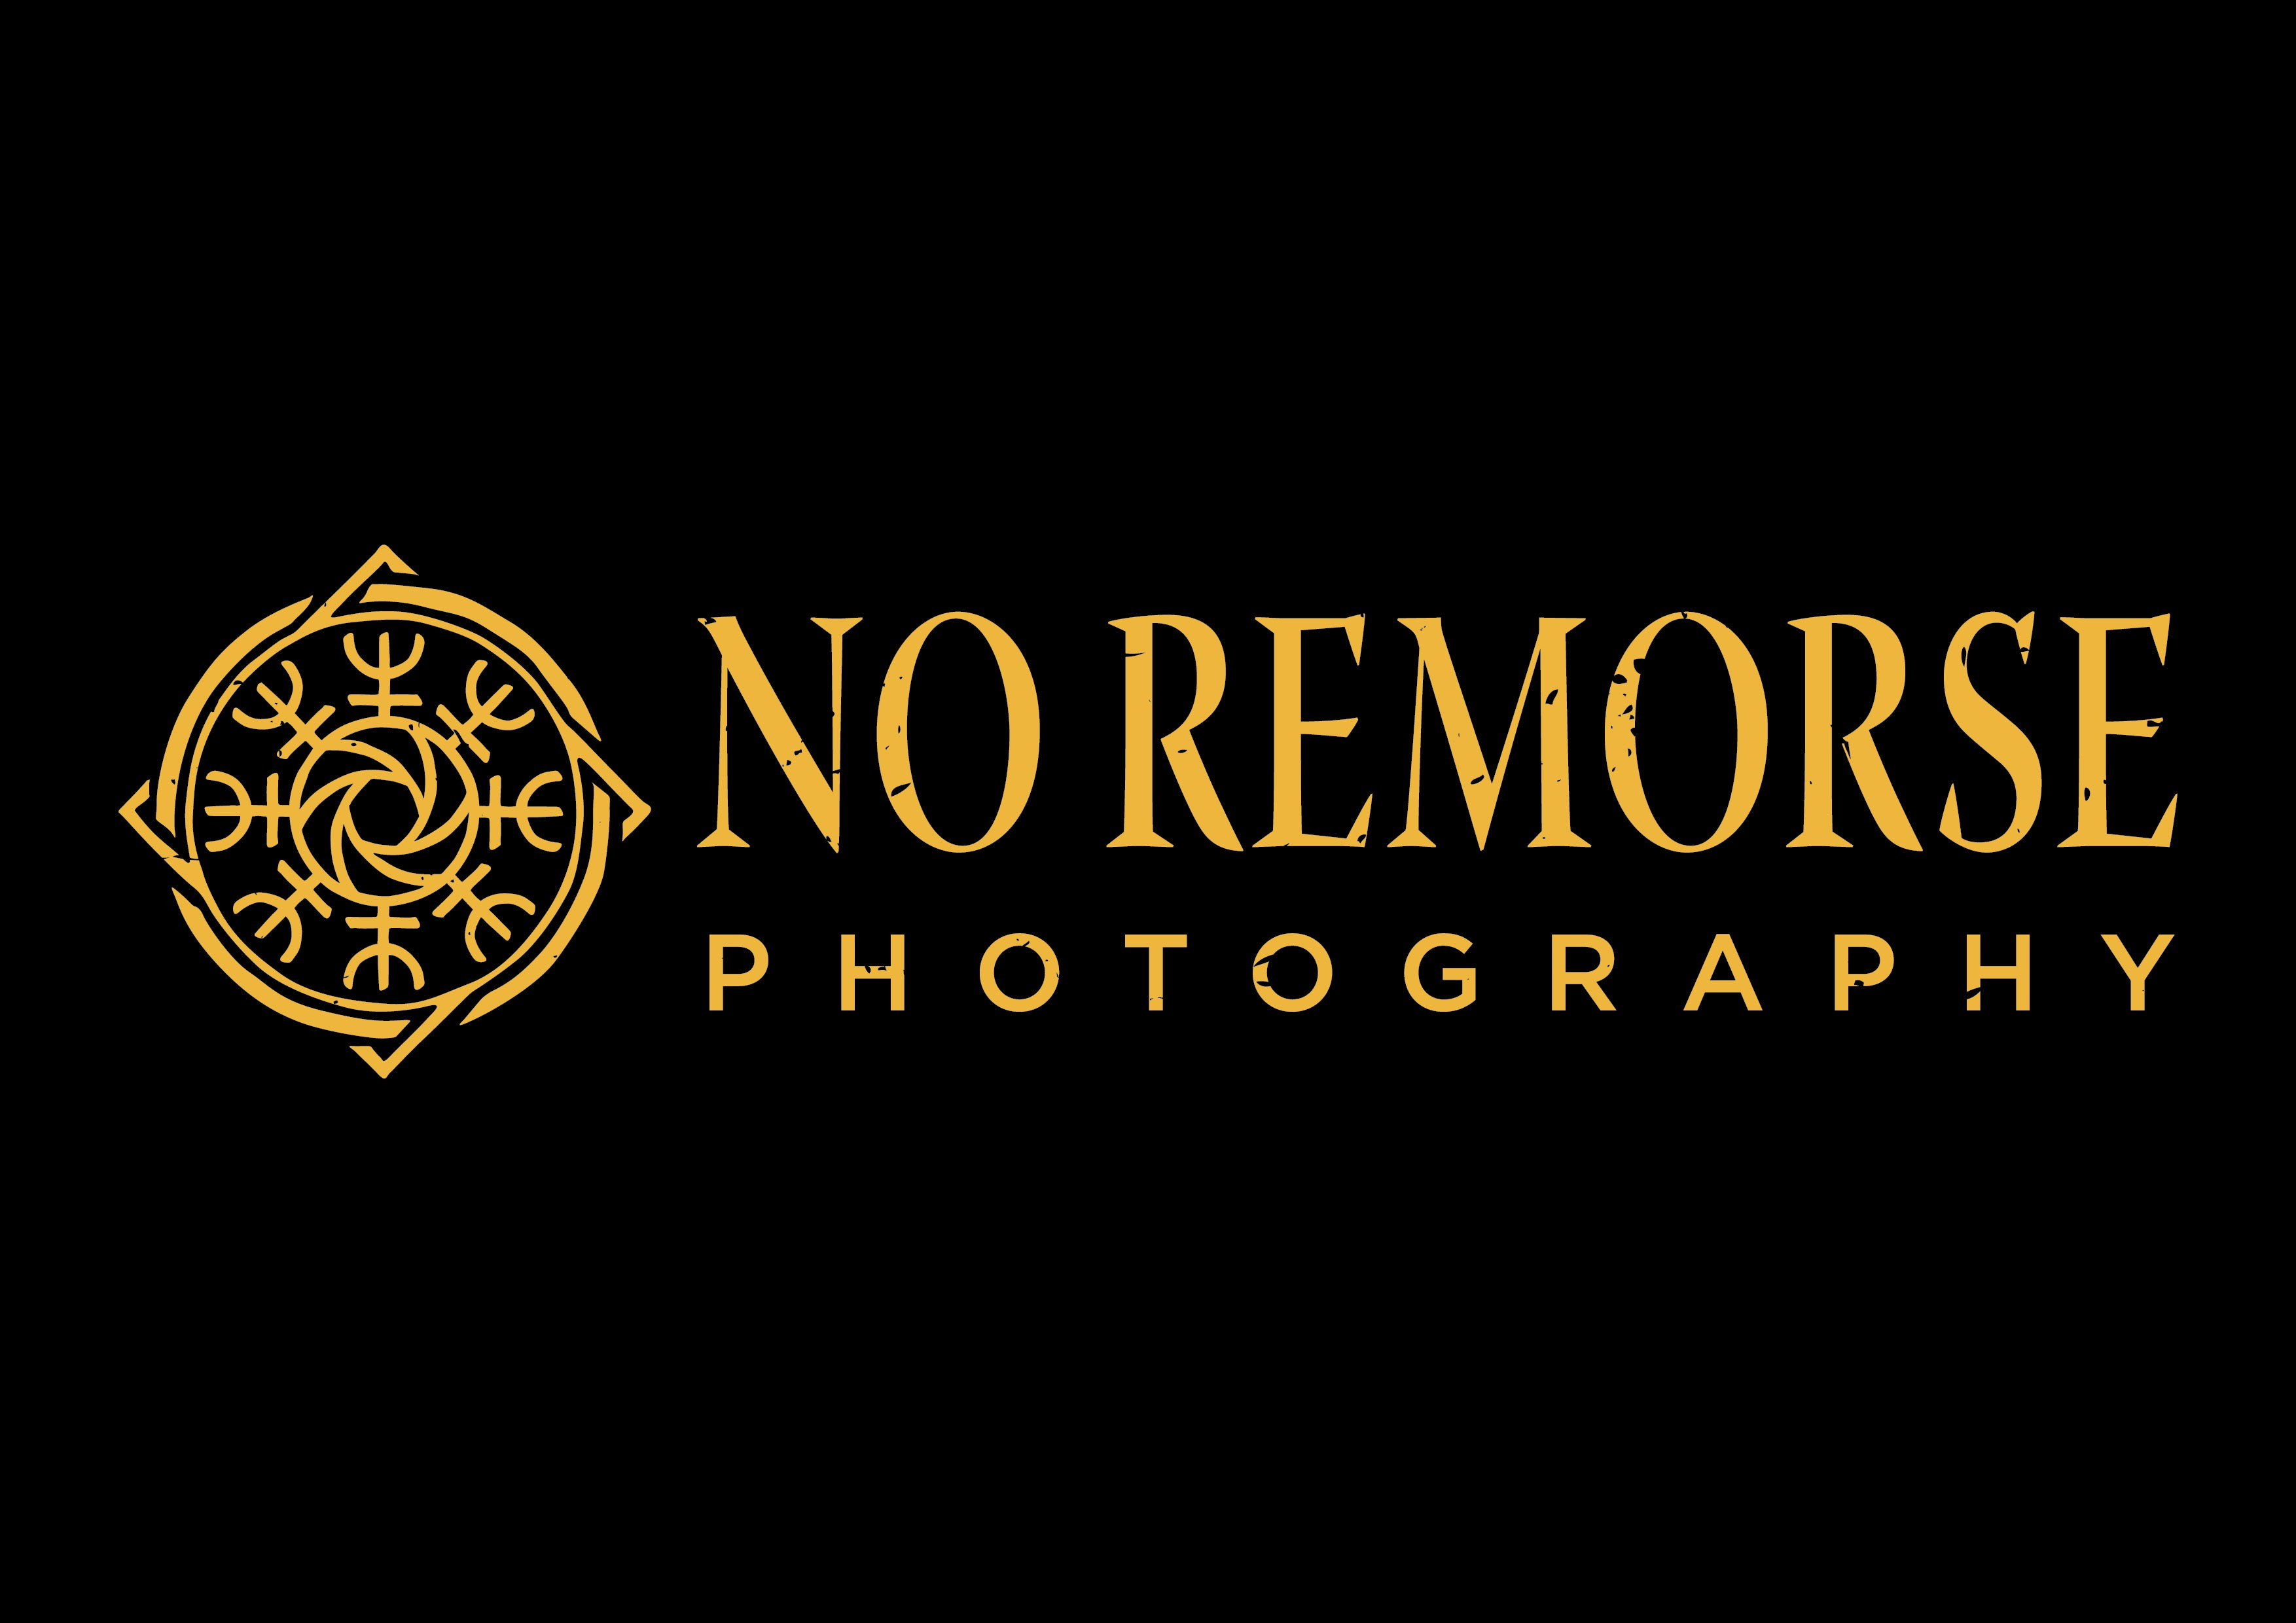 Create a dark and classical logo for No Remorse Photography.